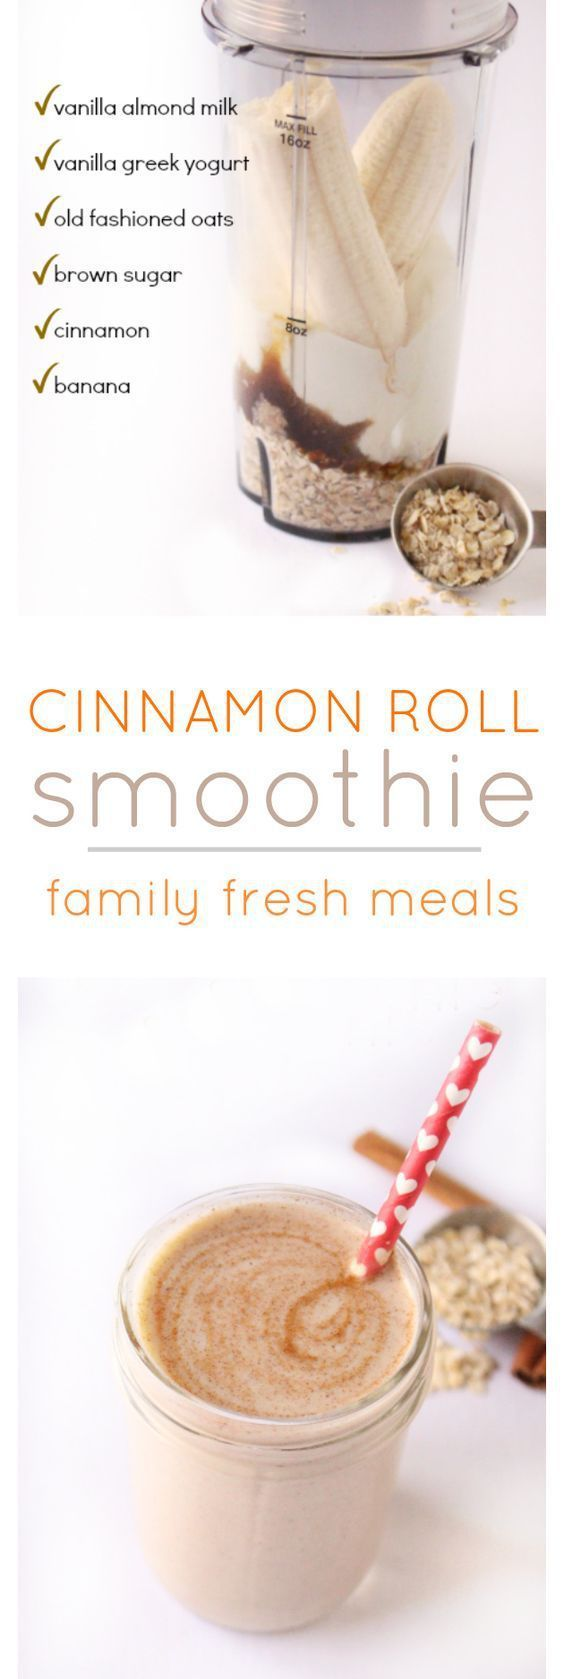 FRESH-BAKED CINNAMON ROLL, CRAMMED INTO A GLASS! Smoothie